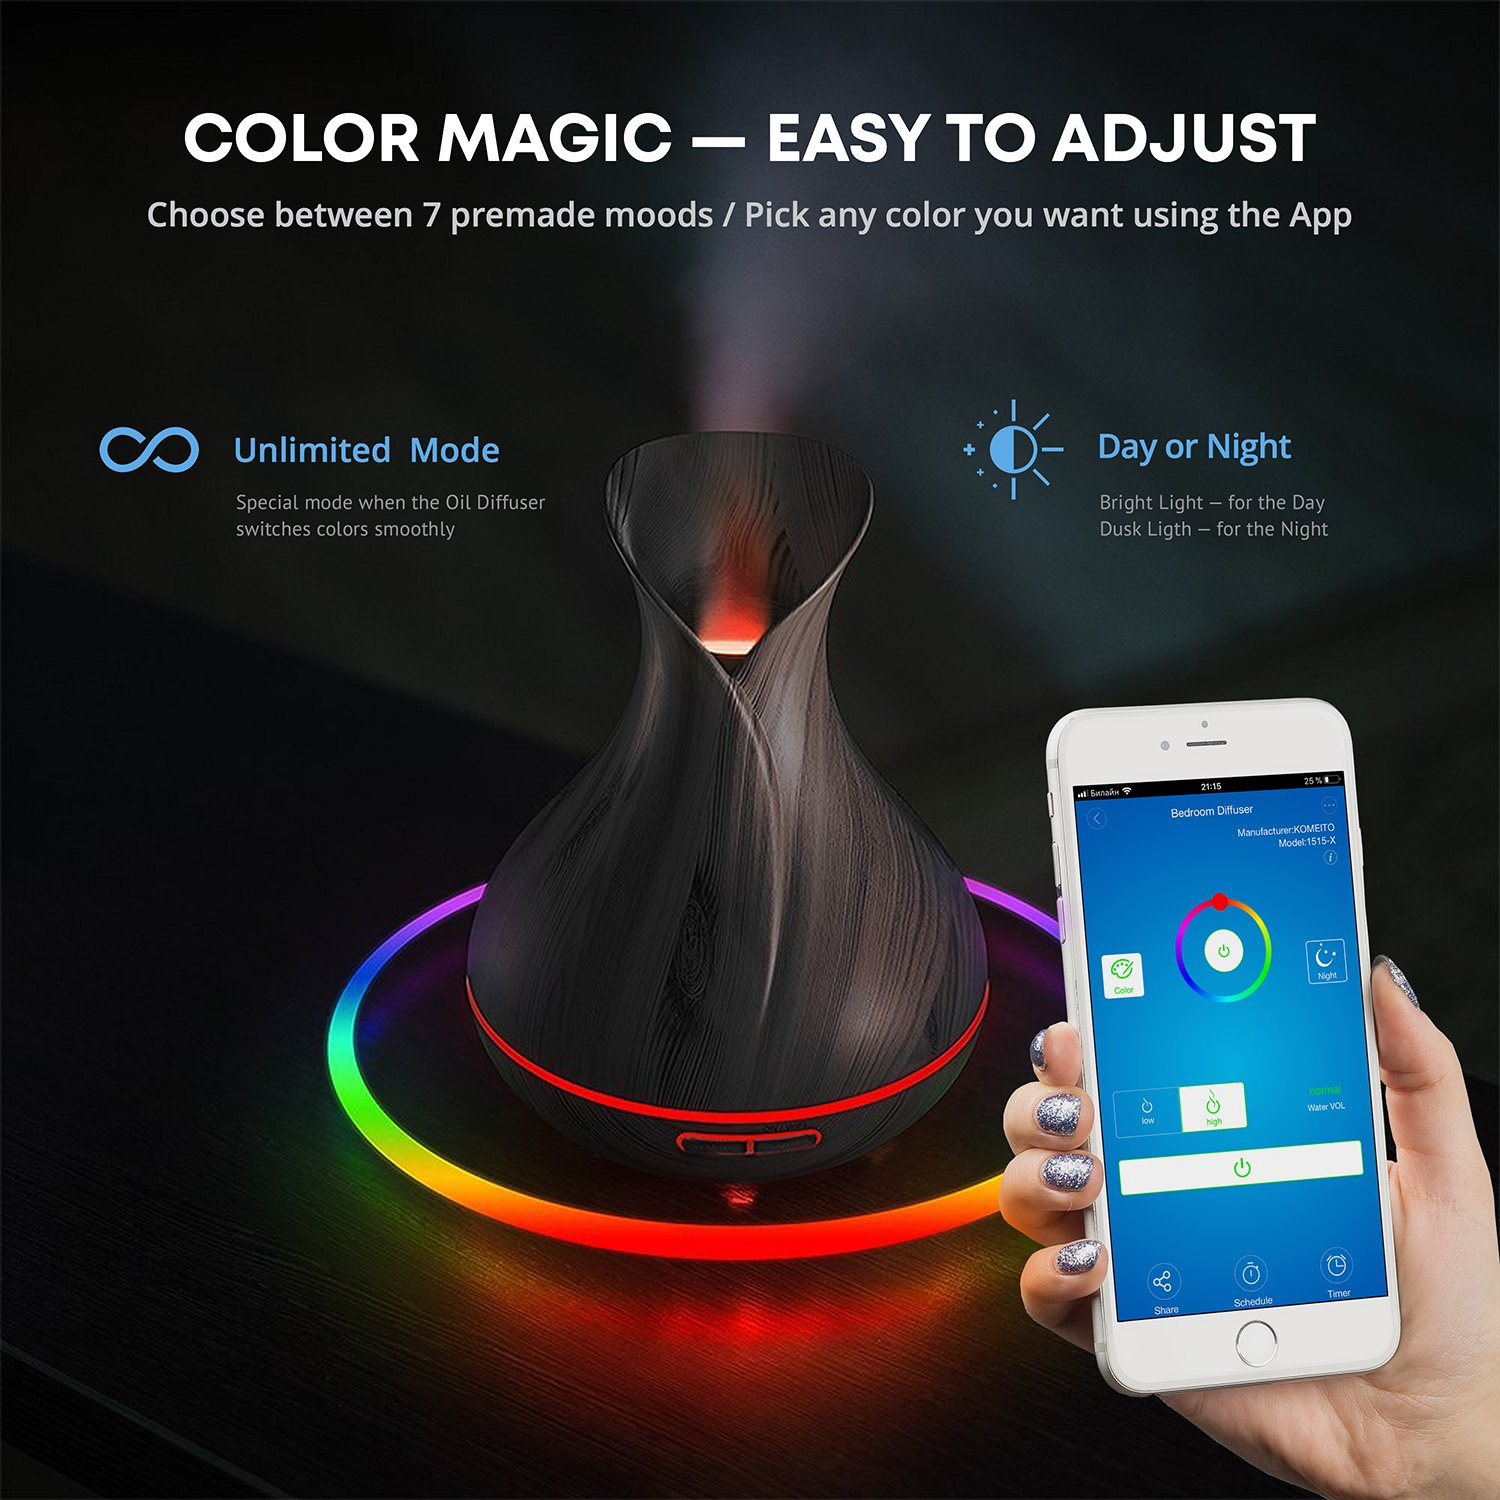 Smart Wifi Wireless Essential Oil Aromatherapy 400ml Ultrasonic Diffuser & Humidifier With Alexa & Google Home Phone App & Voice Control - Create Schedules - LED & Timer Settings by Sierra Modern Home (Image #3)